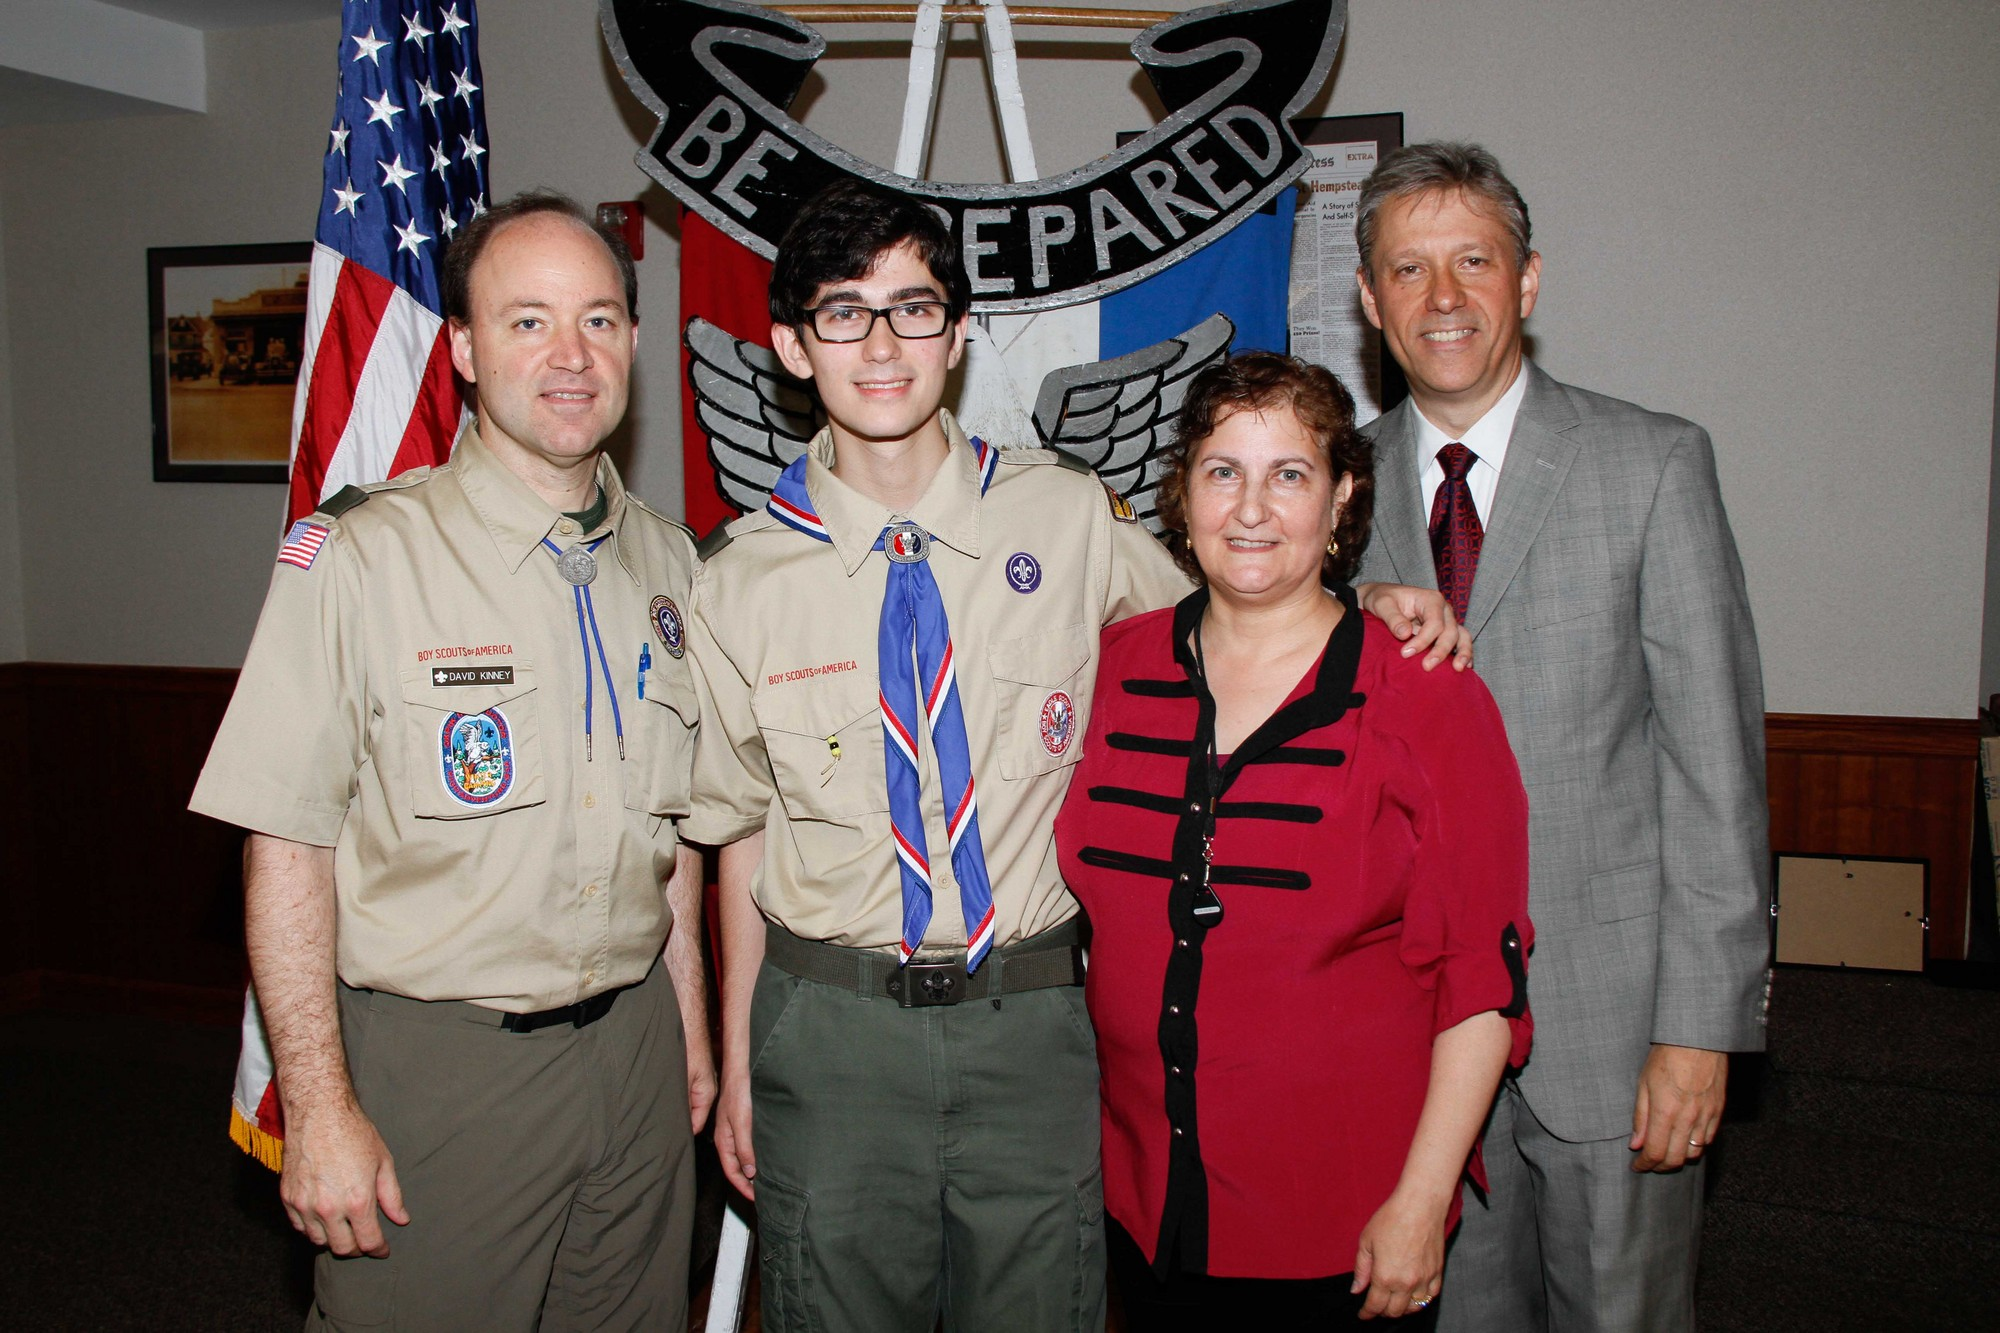 Scout Master David Kinney, left, and Hesselbach's parents, Laura and Robert, right, recognized the Eagle Scout for his dedicated service to the community.